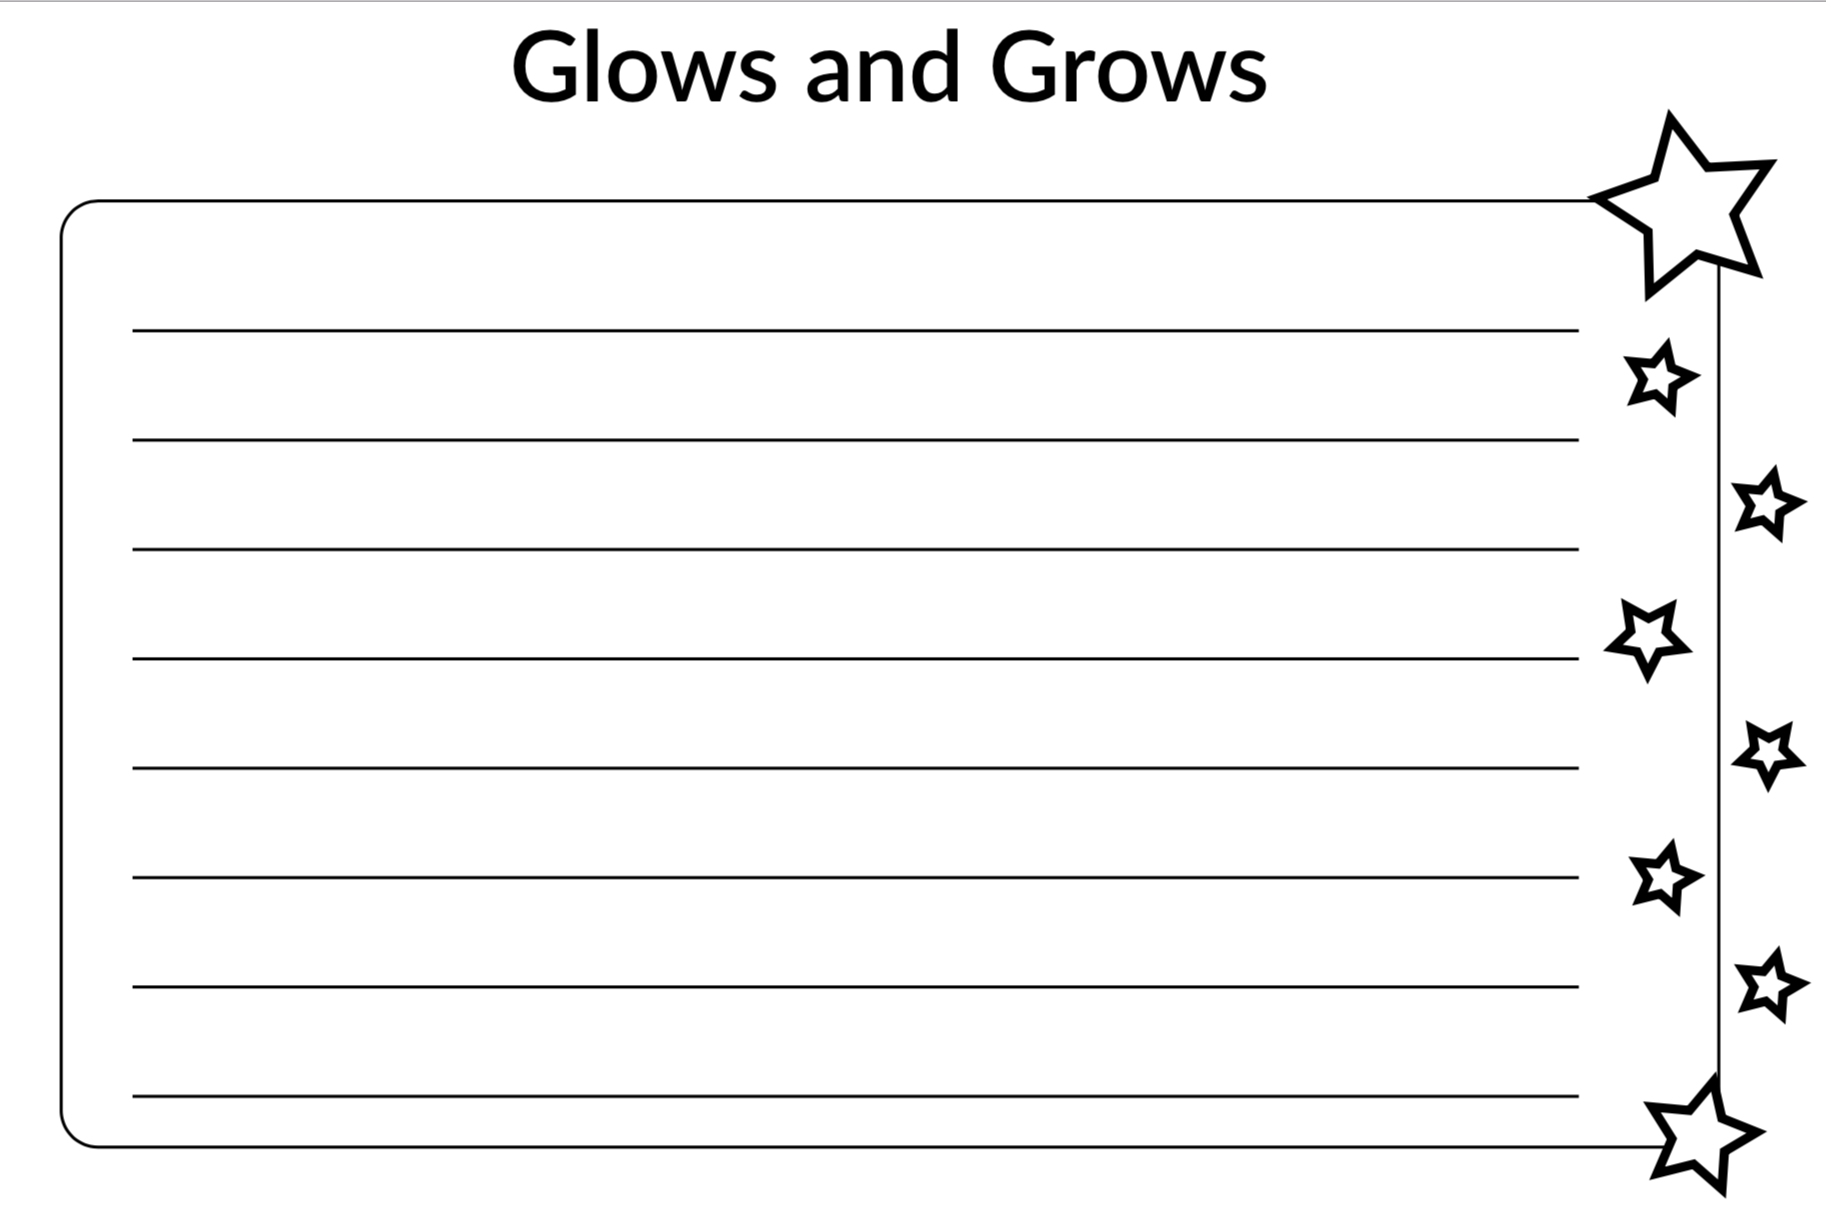 Glows and Grows Image